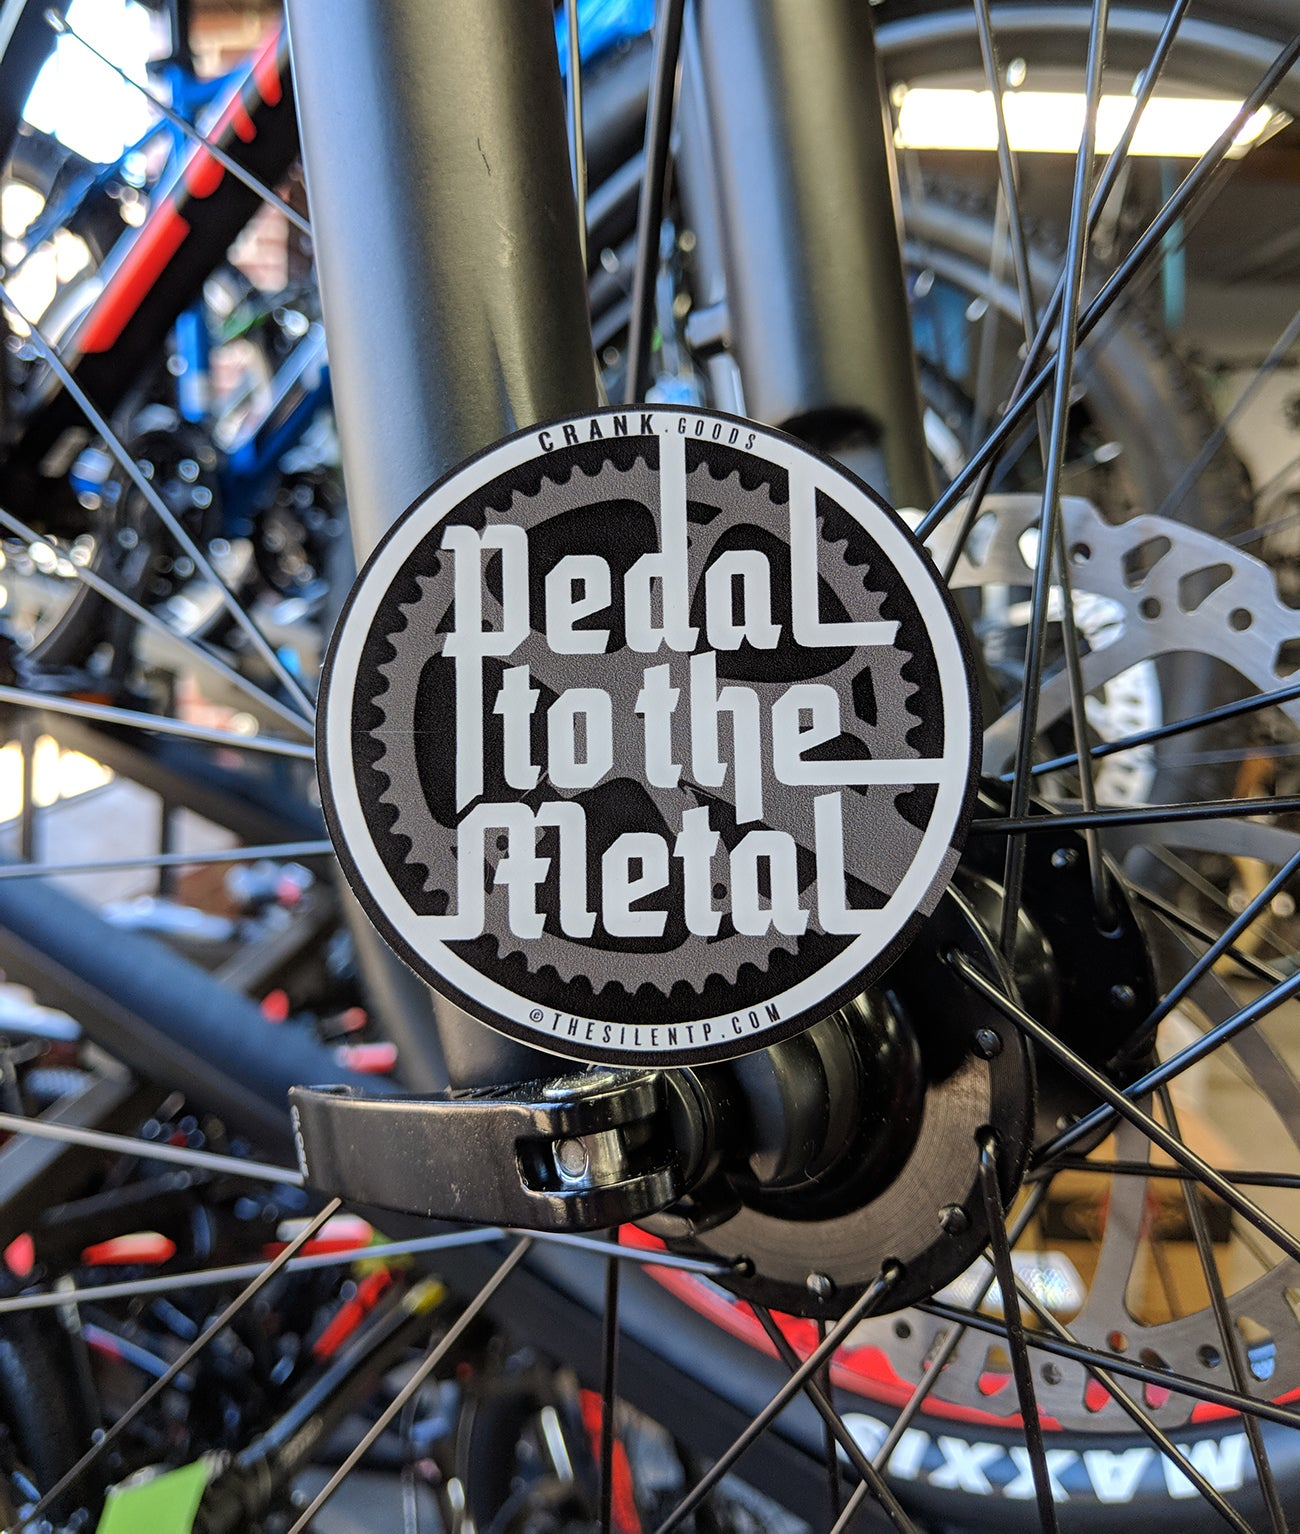 Image of 'Pedal to the Metal' matte finish round vinyl sticker.